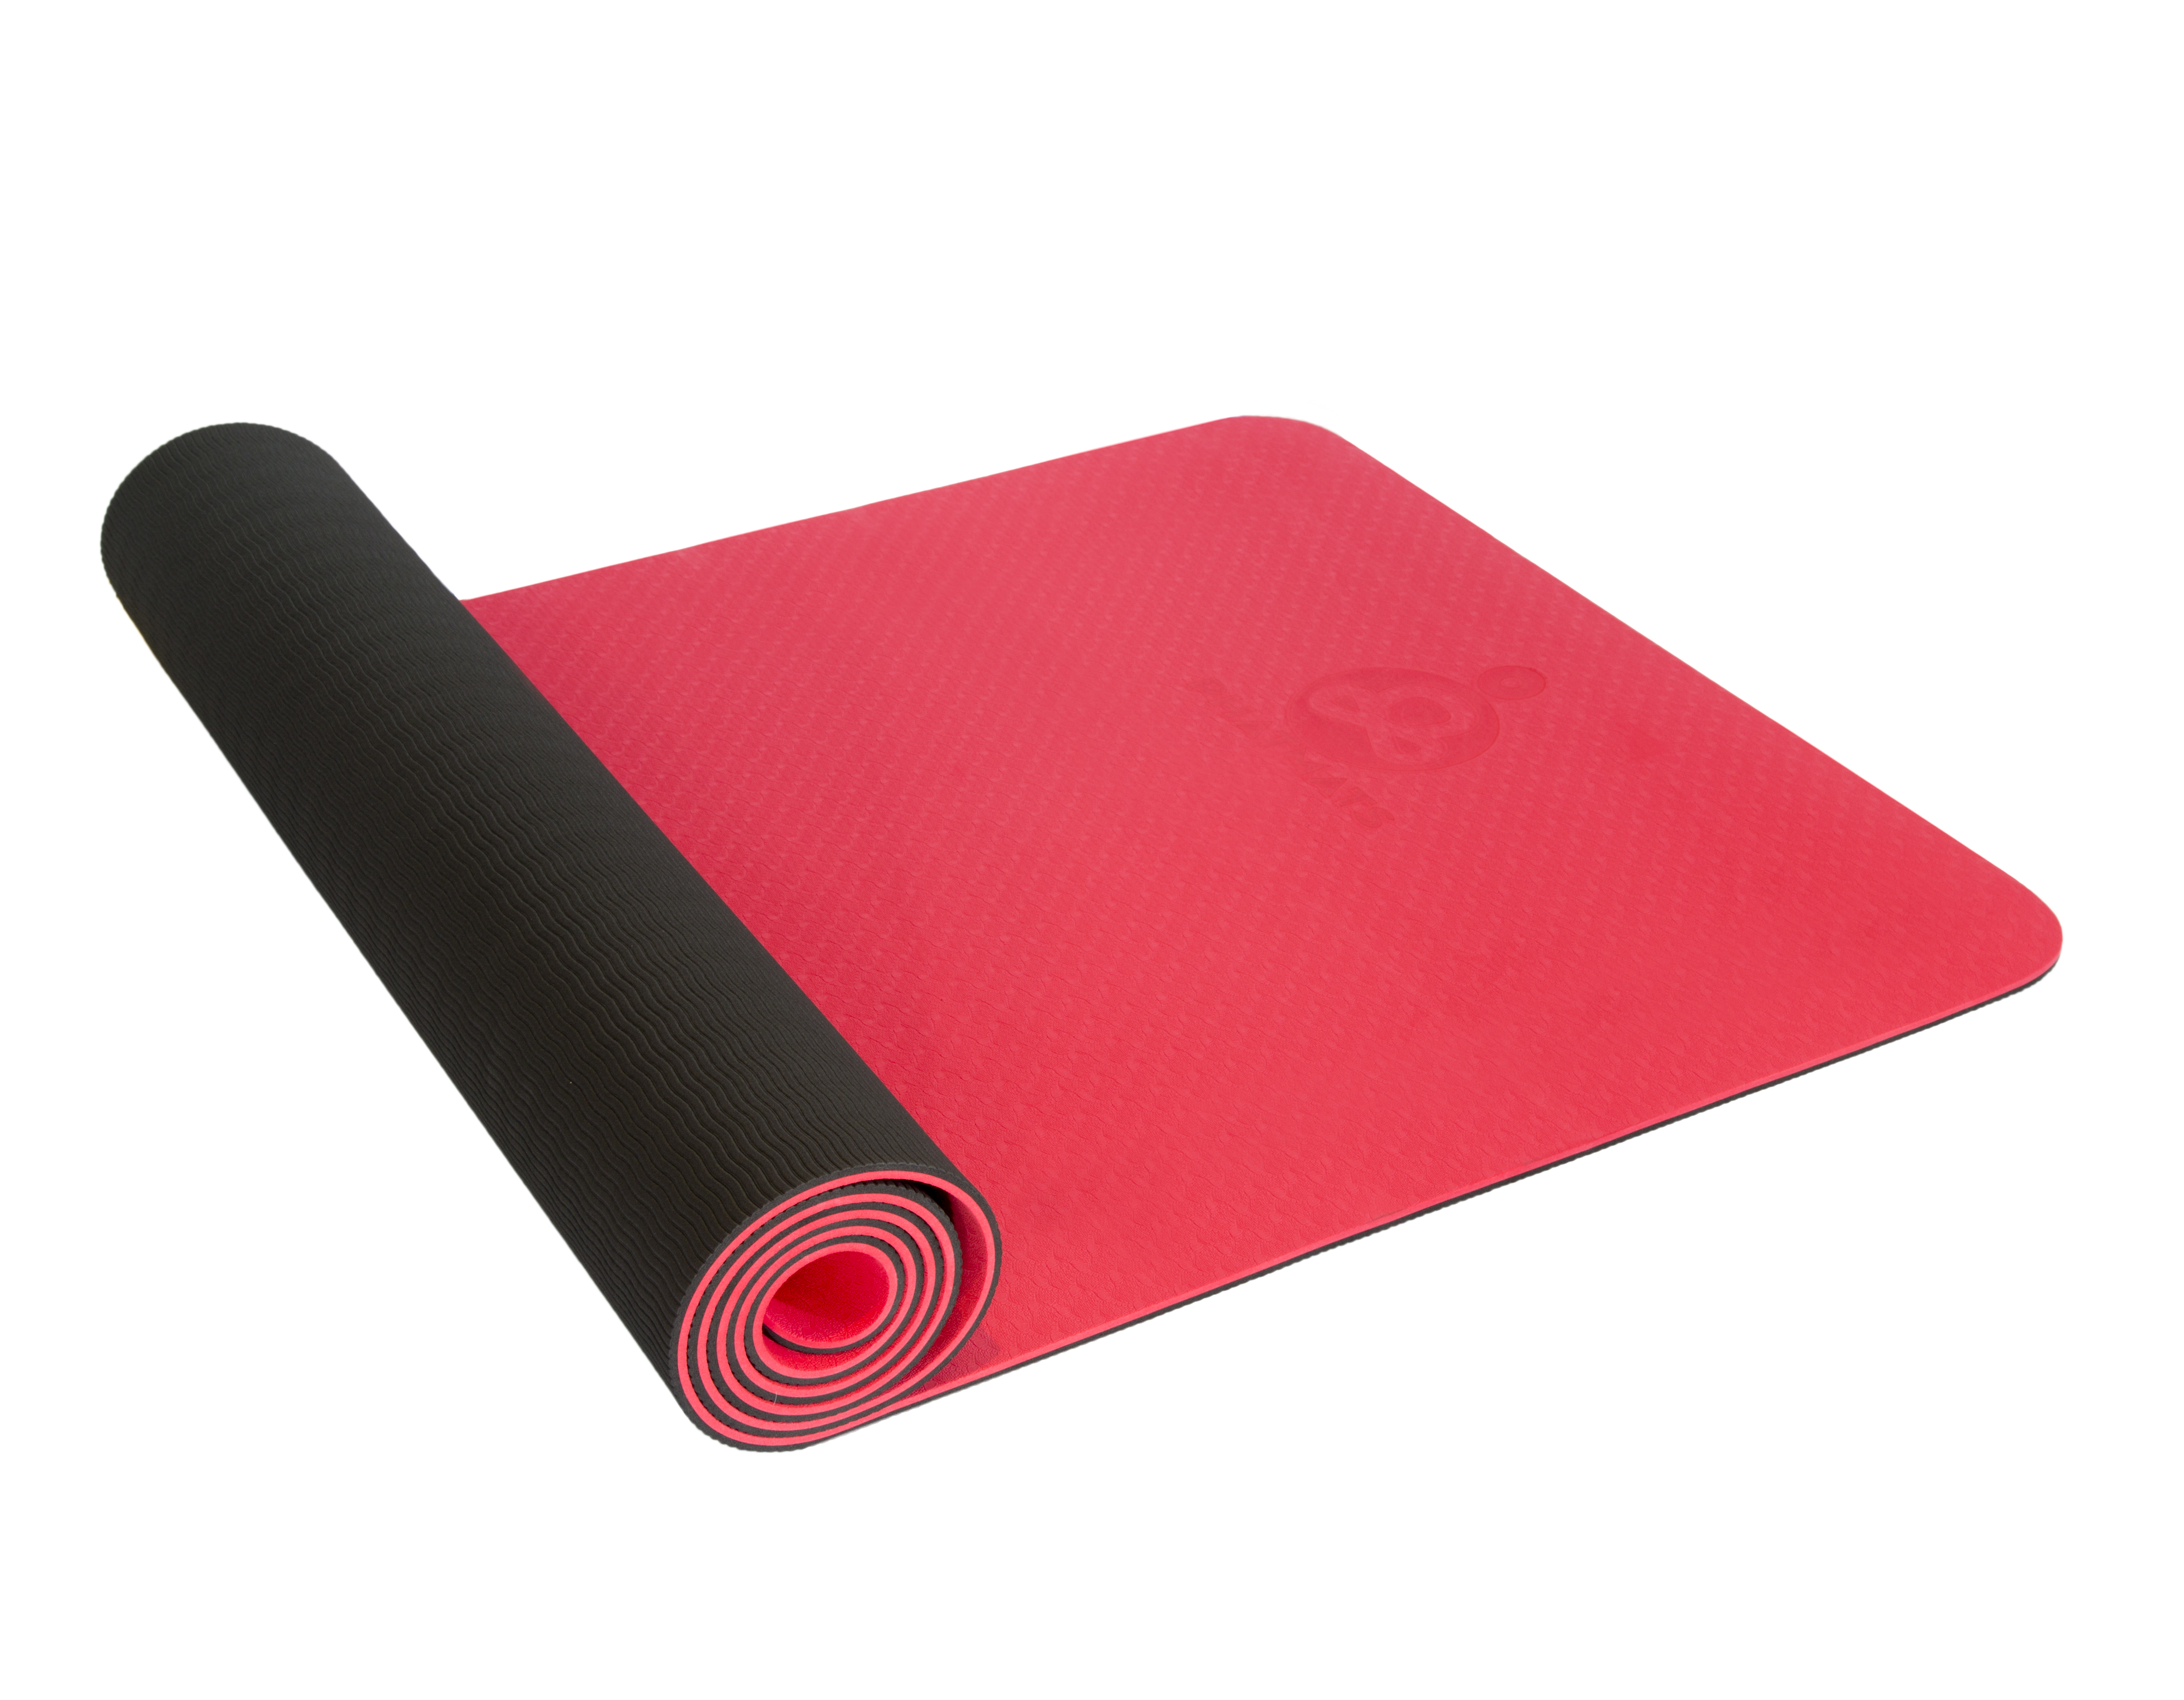 Phatmat Care - Red yoga mat Austrlia, pilates mat, gym mat